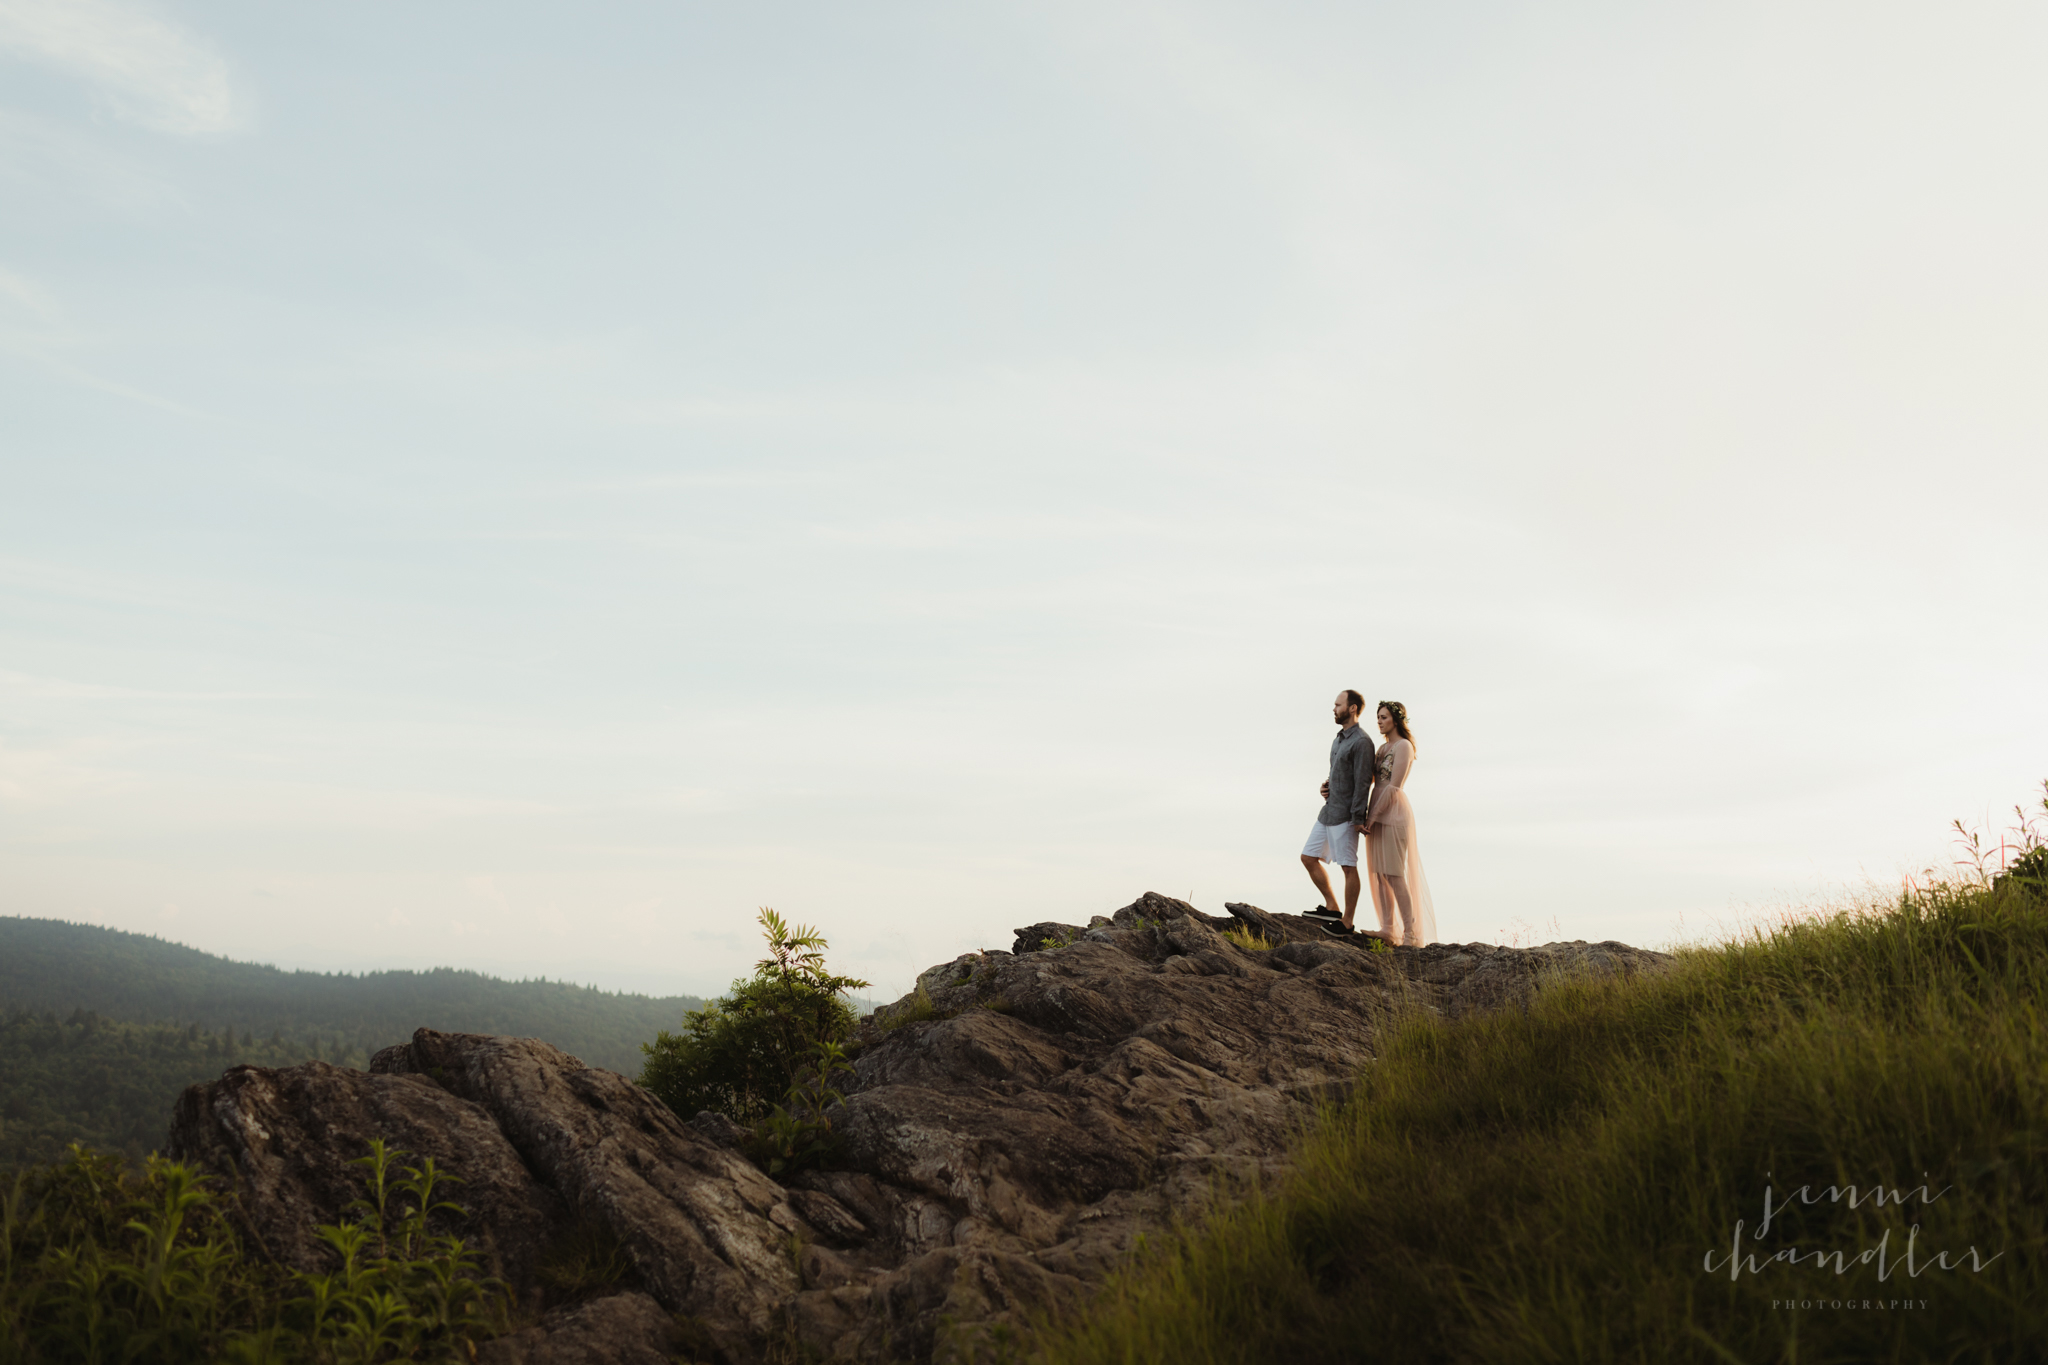 black balsam knob, engagement, engagement session, jenni chandler photography, asheville wedding photographer, brevard nc wedding photographer, brevard wedding photographer, mountain top engagement, engaged, couples in love, green wedding shoes, avl wedding guide, asheville wedding guide, looking glass falls, looking glass falls engagement, brevard nc, we are brevard, brevard photographer, brevard wedding, wnc wedding, wnc events